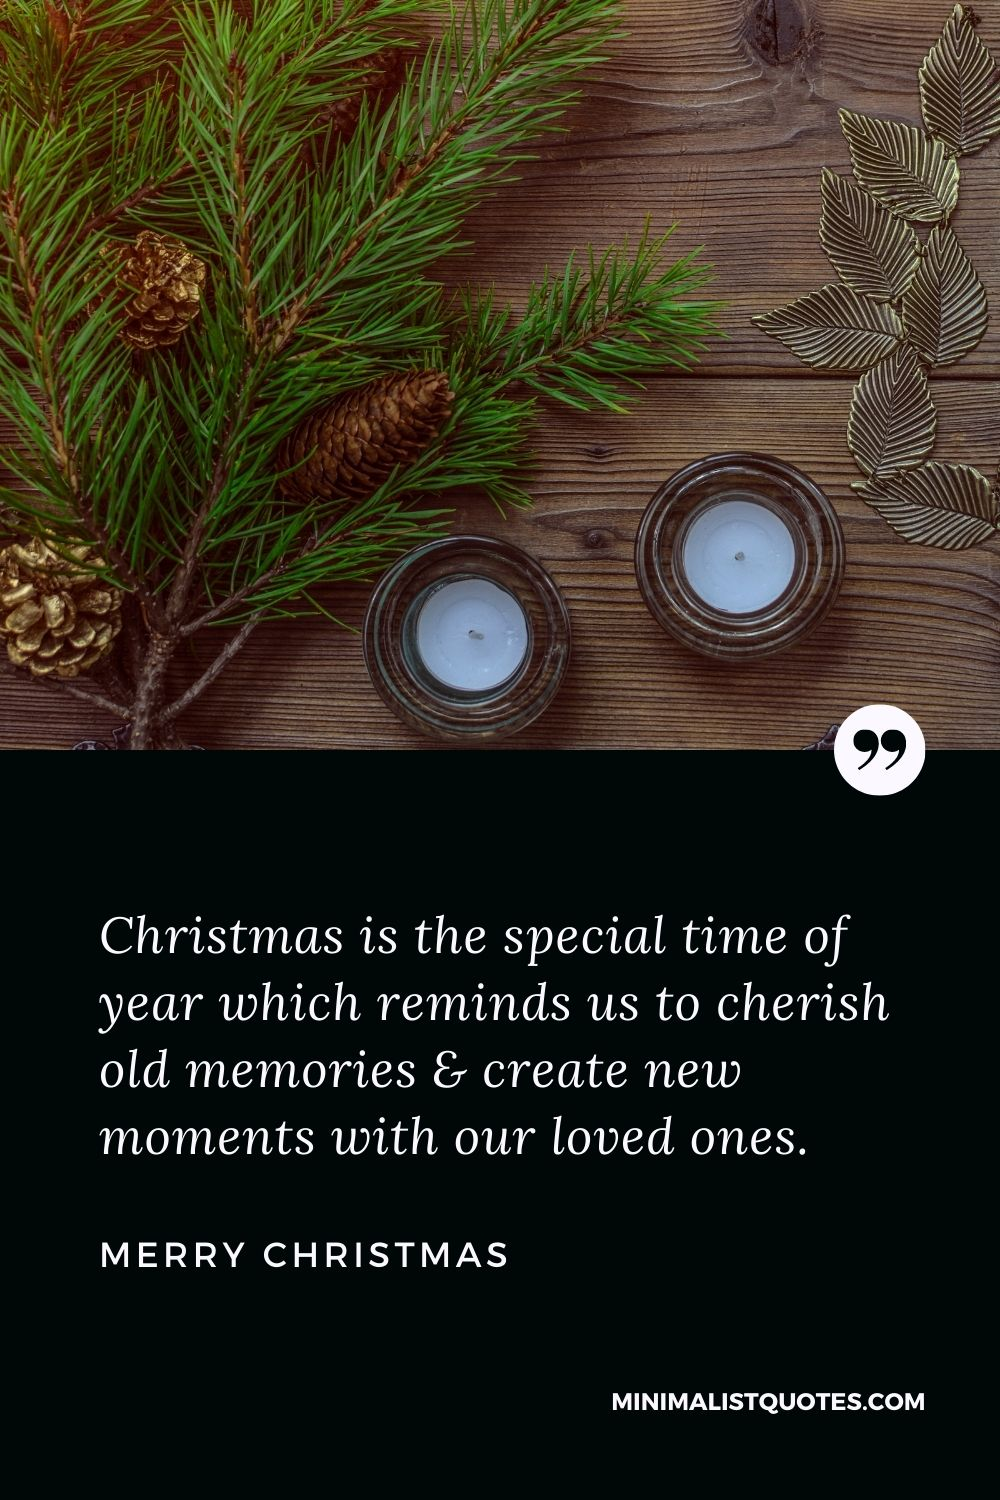 Merry Christmas Wish - Christmas is the special time of year which reminds us to cherish old memories & create new moments with our loved ones.